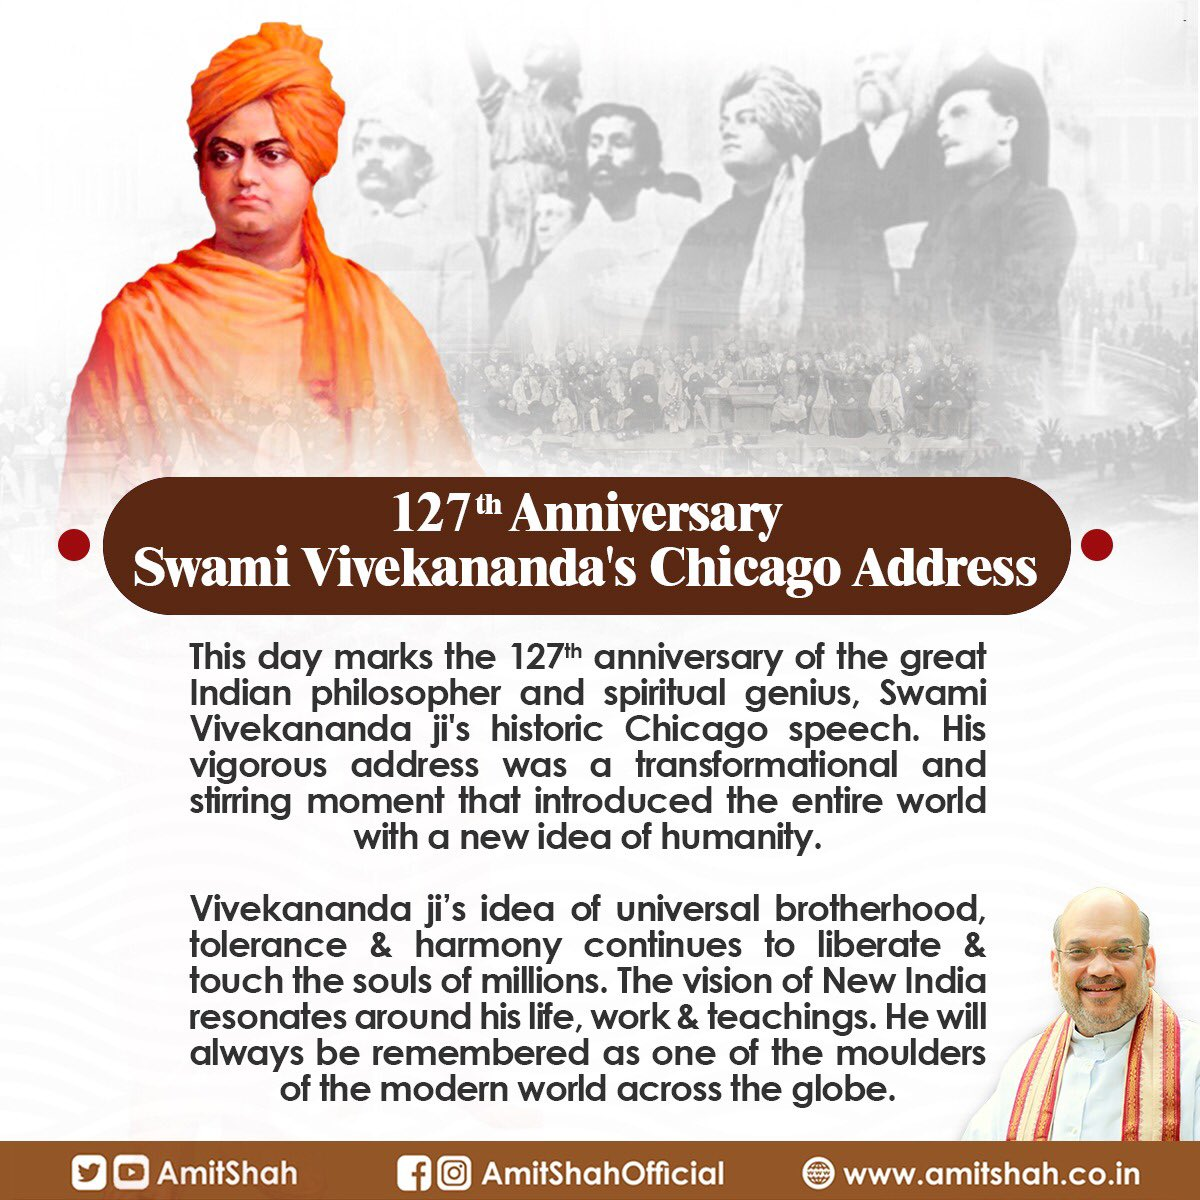 This day marks the 127th anniversary of the great Indian philosopher and spiritual genius, Swami Vivekananda jis historic Chicago speech. His vigorous address was a transformational and stirring moment that introduced the entire world with a new idea of humanity.